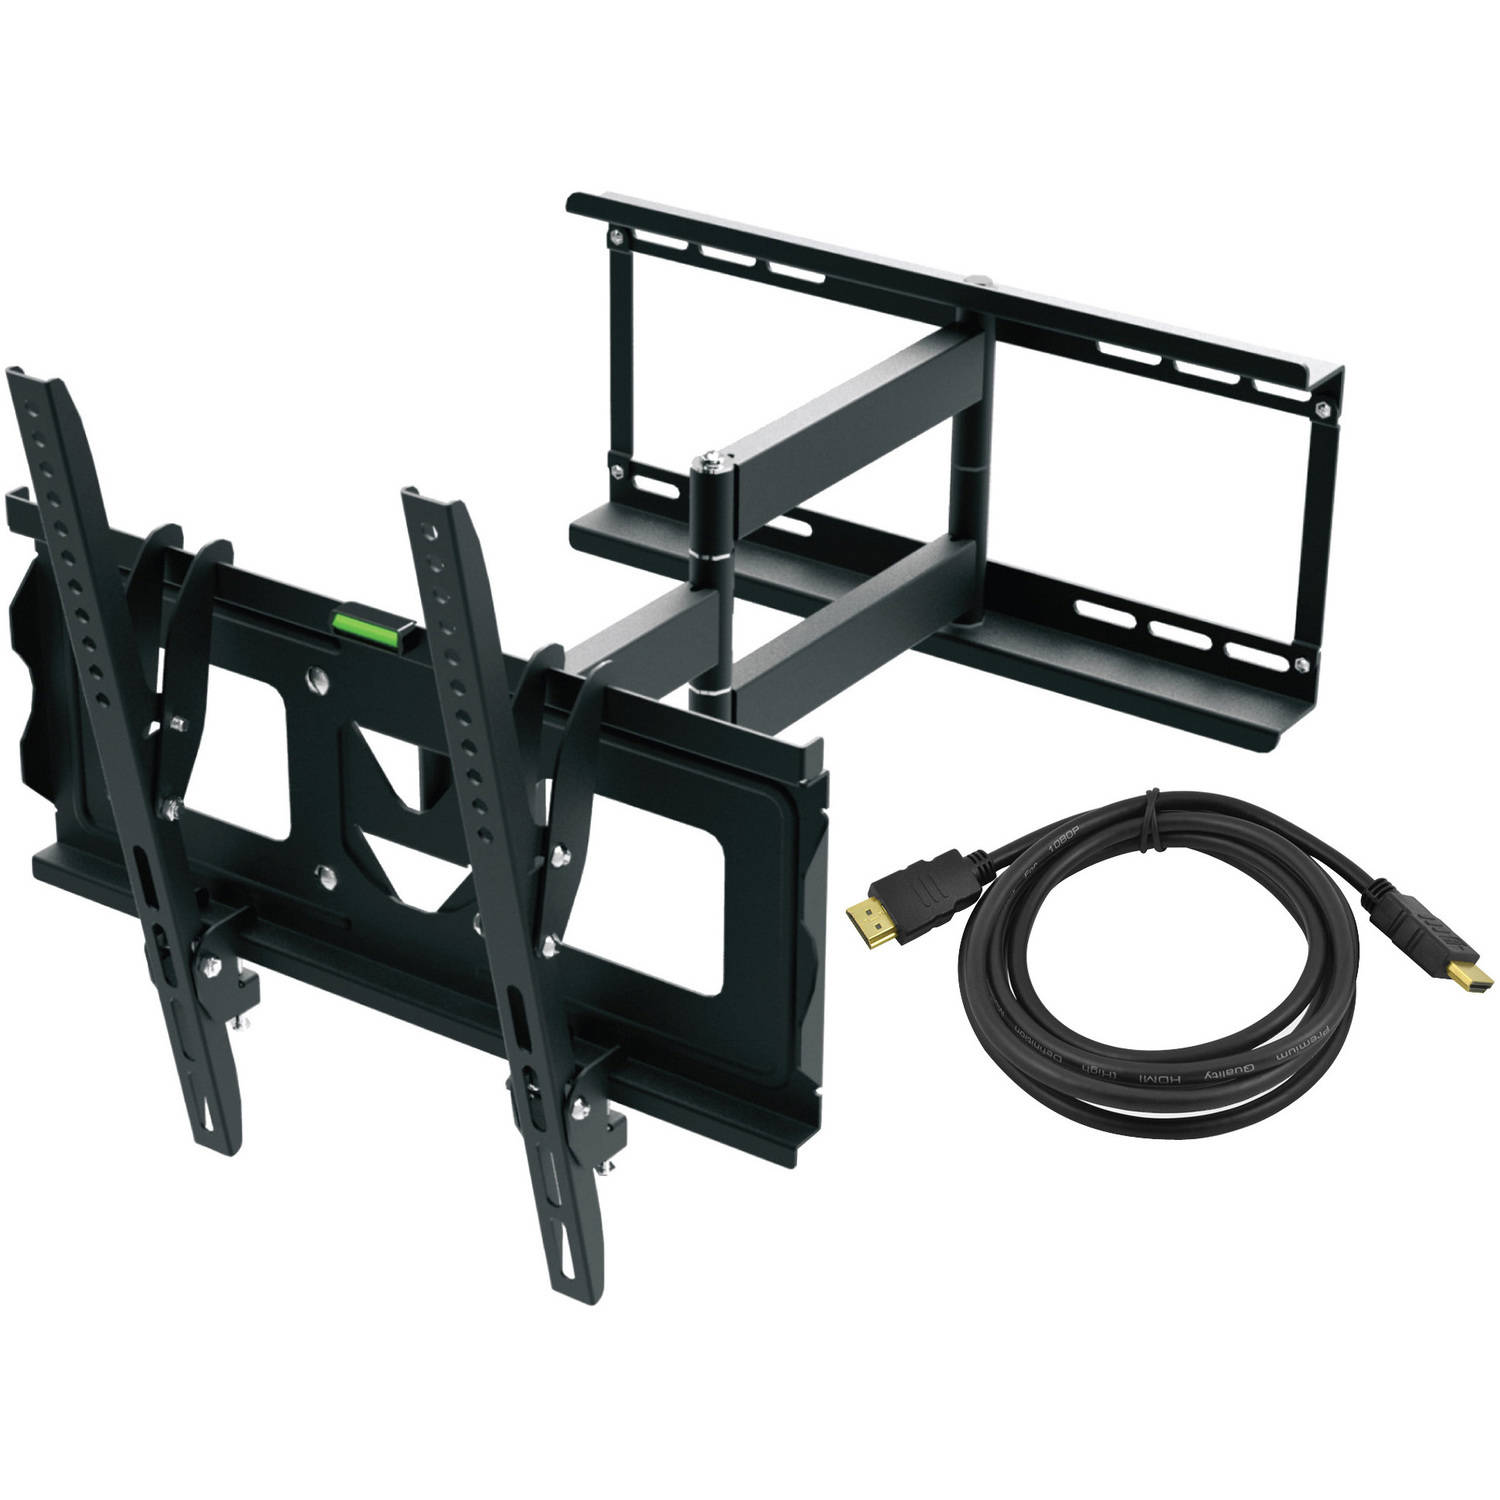 "Ematic Full Motion TV Wall Mount Kit with HDMI Cable for 19"" - 70"" Displays"